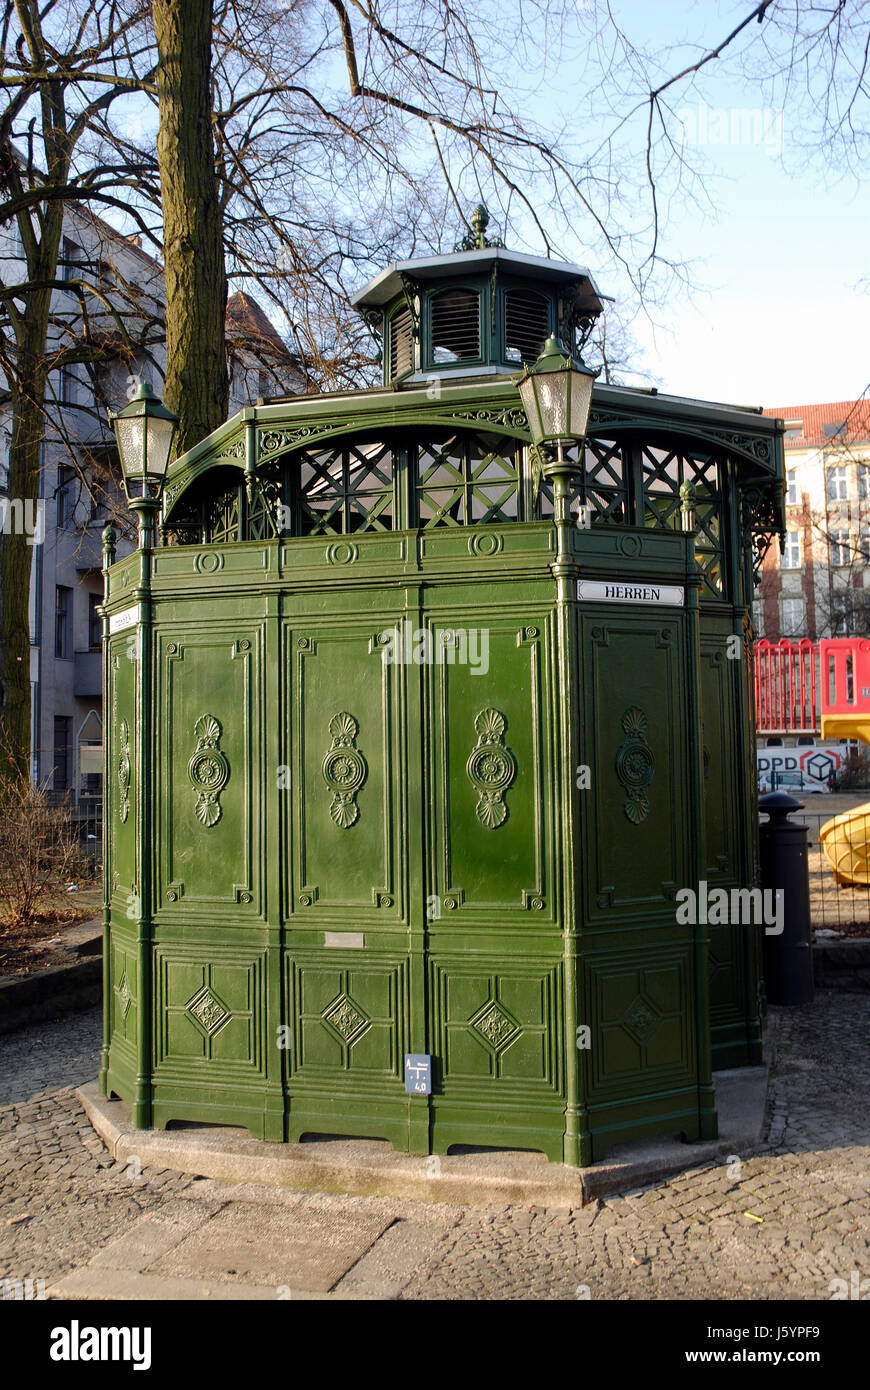 pissoir berlin stock photos pissoir berlin stock images alamy. Black Bedroom Furniture Sets. Home Design Ideas